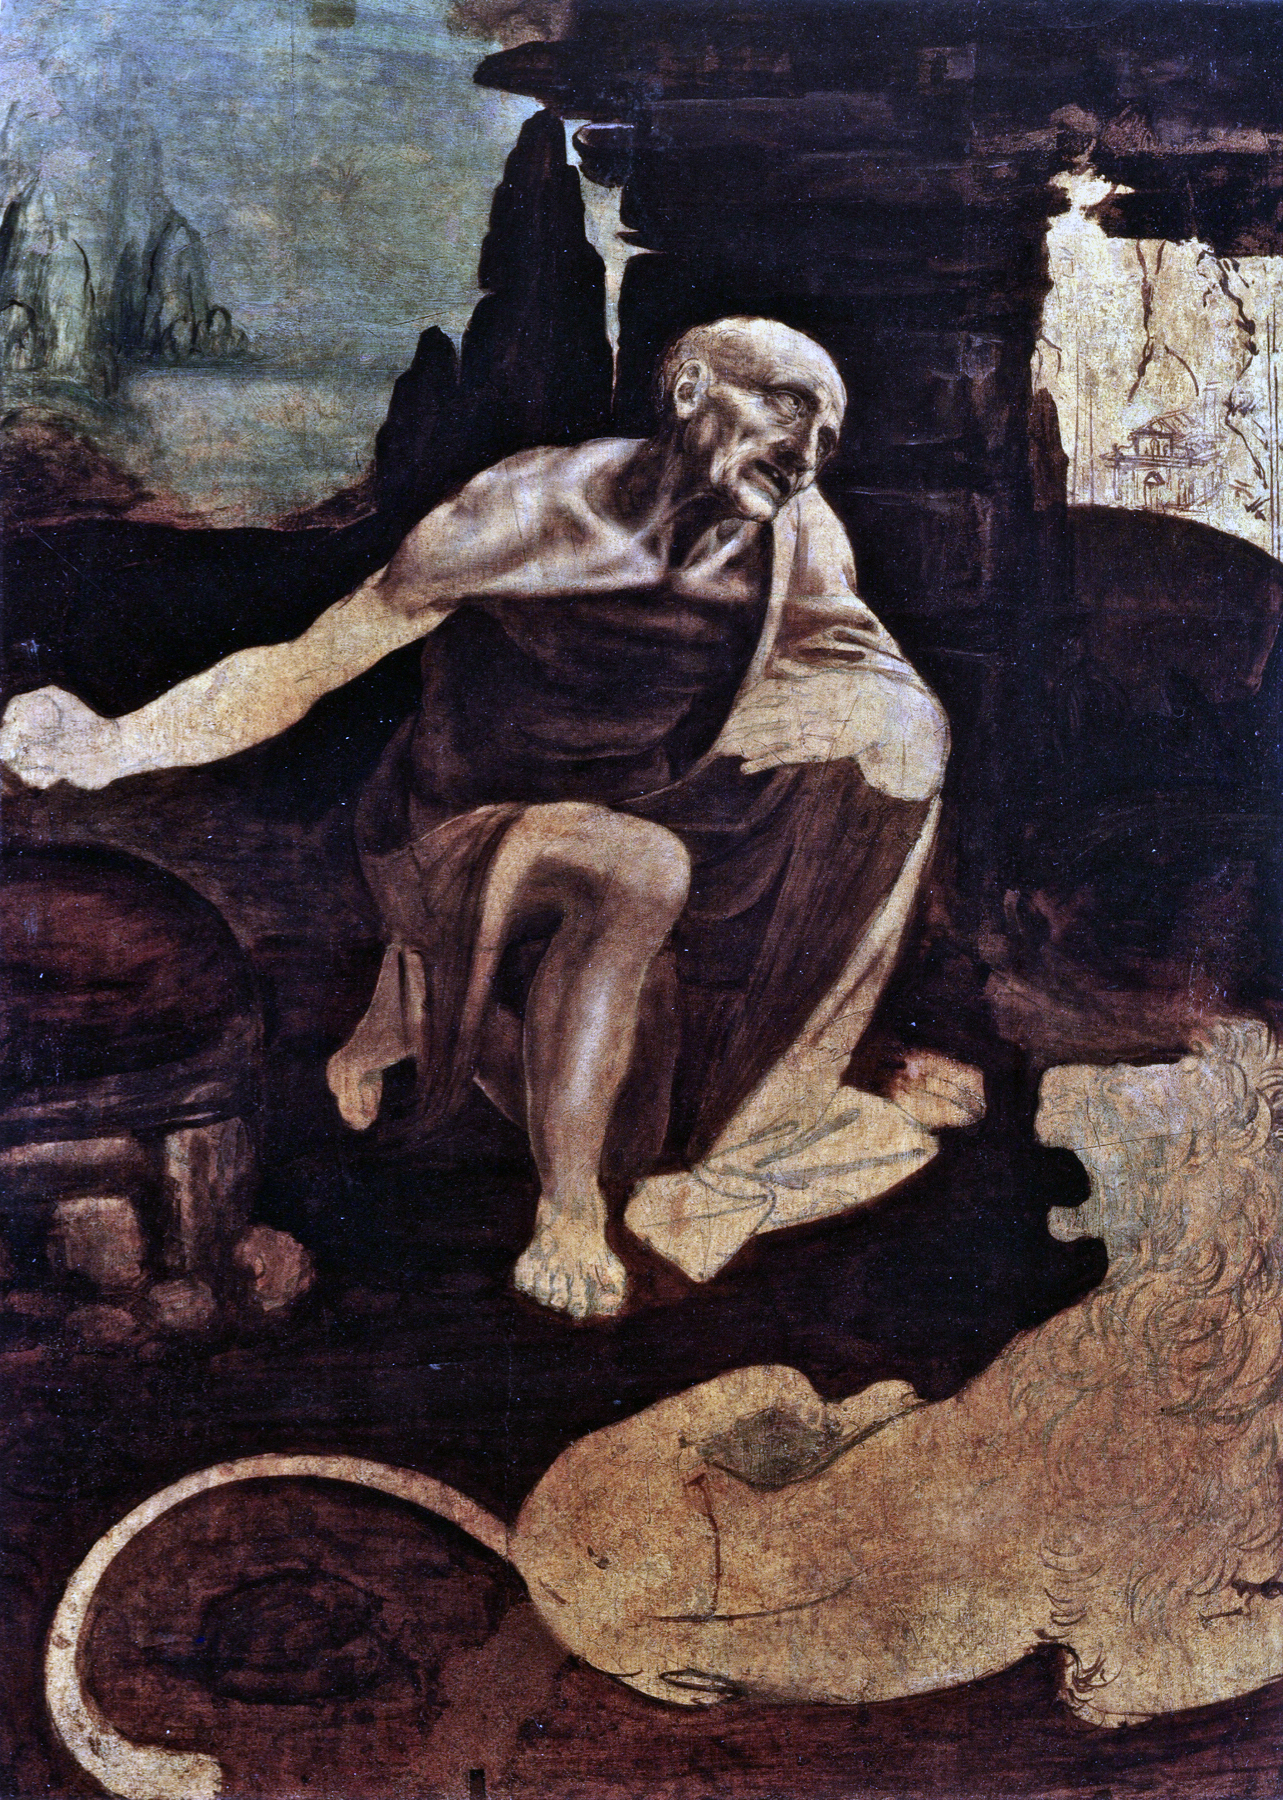 ARTWORK_1_010_ Leonardo da Vinci_St. Jerome in the Wilderness